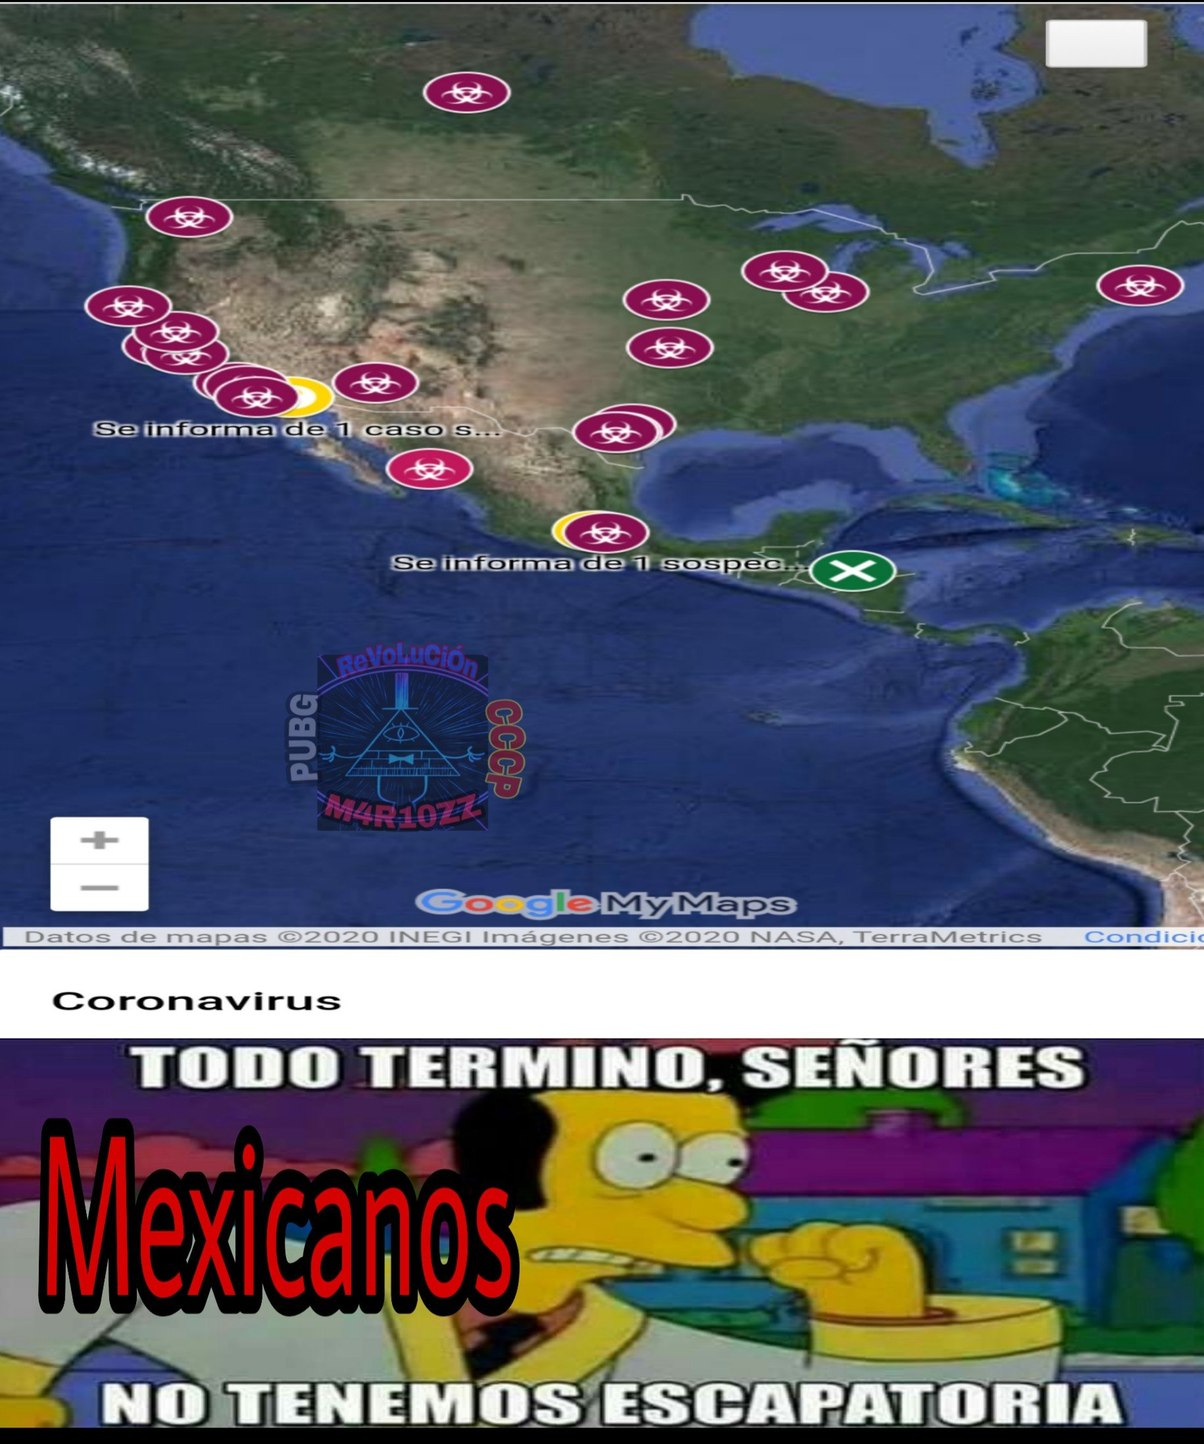 No Mexico - meme